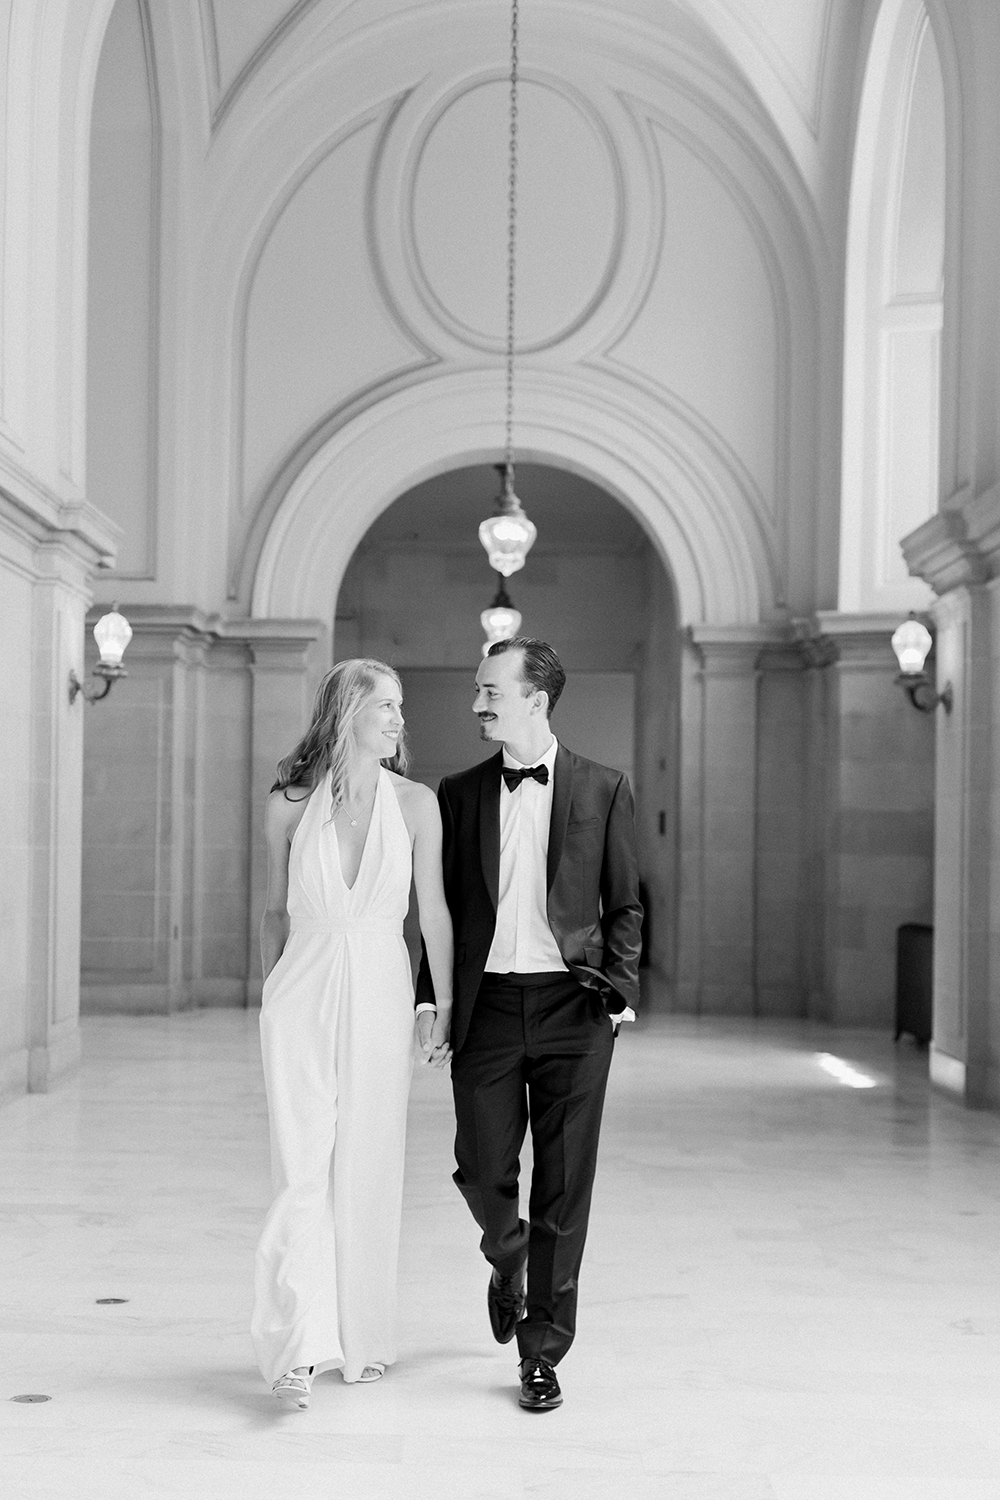 Classic black & white portraits of bride and groom during their San Francisco City Hall wedding.